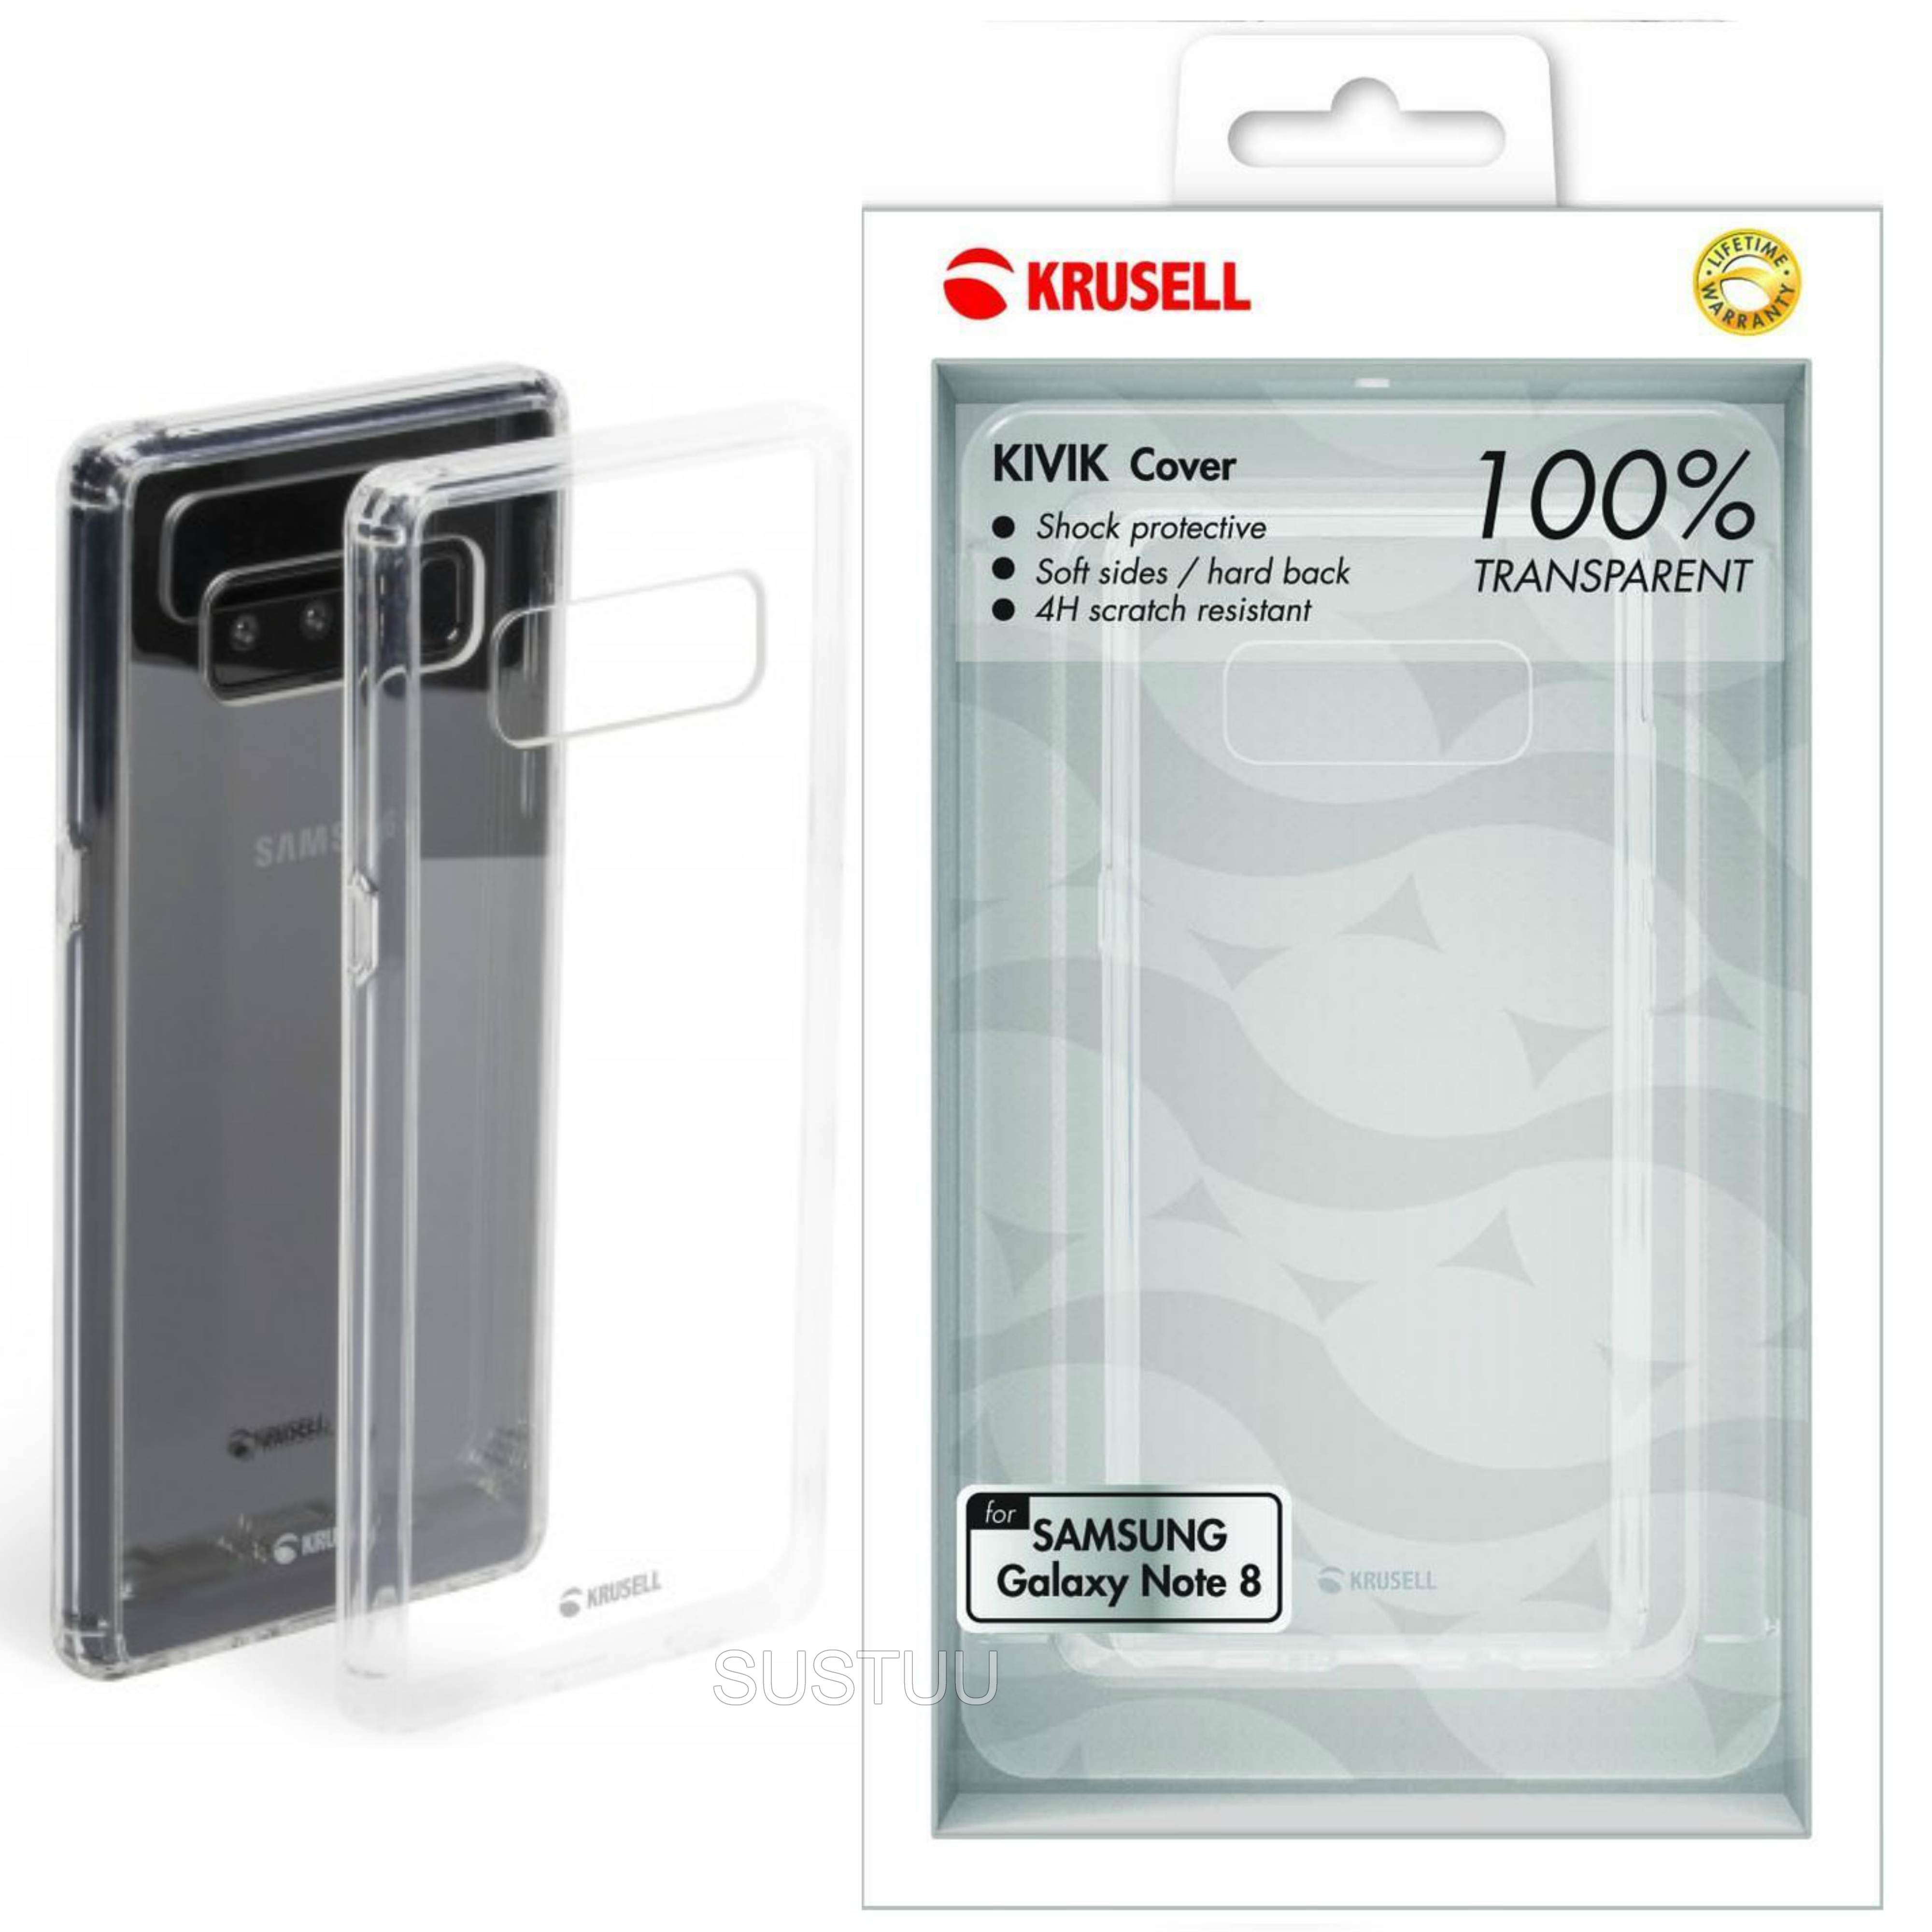 Krusell Kivik Transparent Back Cover | Protective Clear Case | Samsung Galaxy Note 8